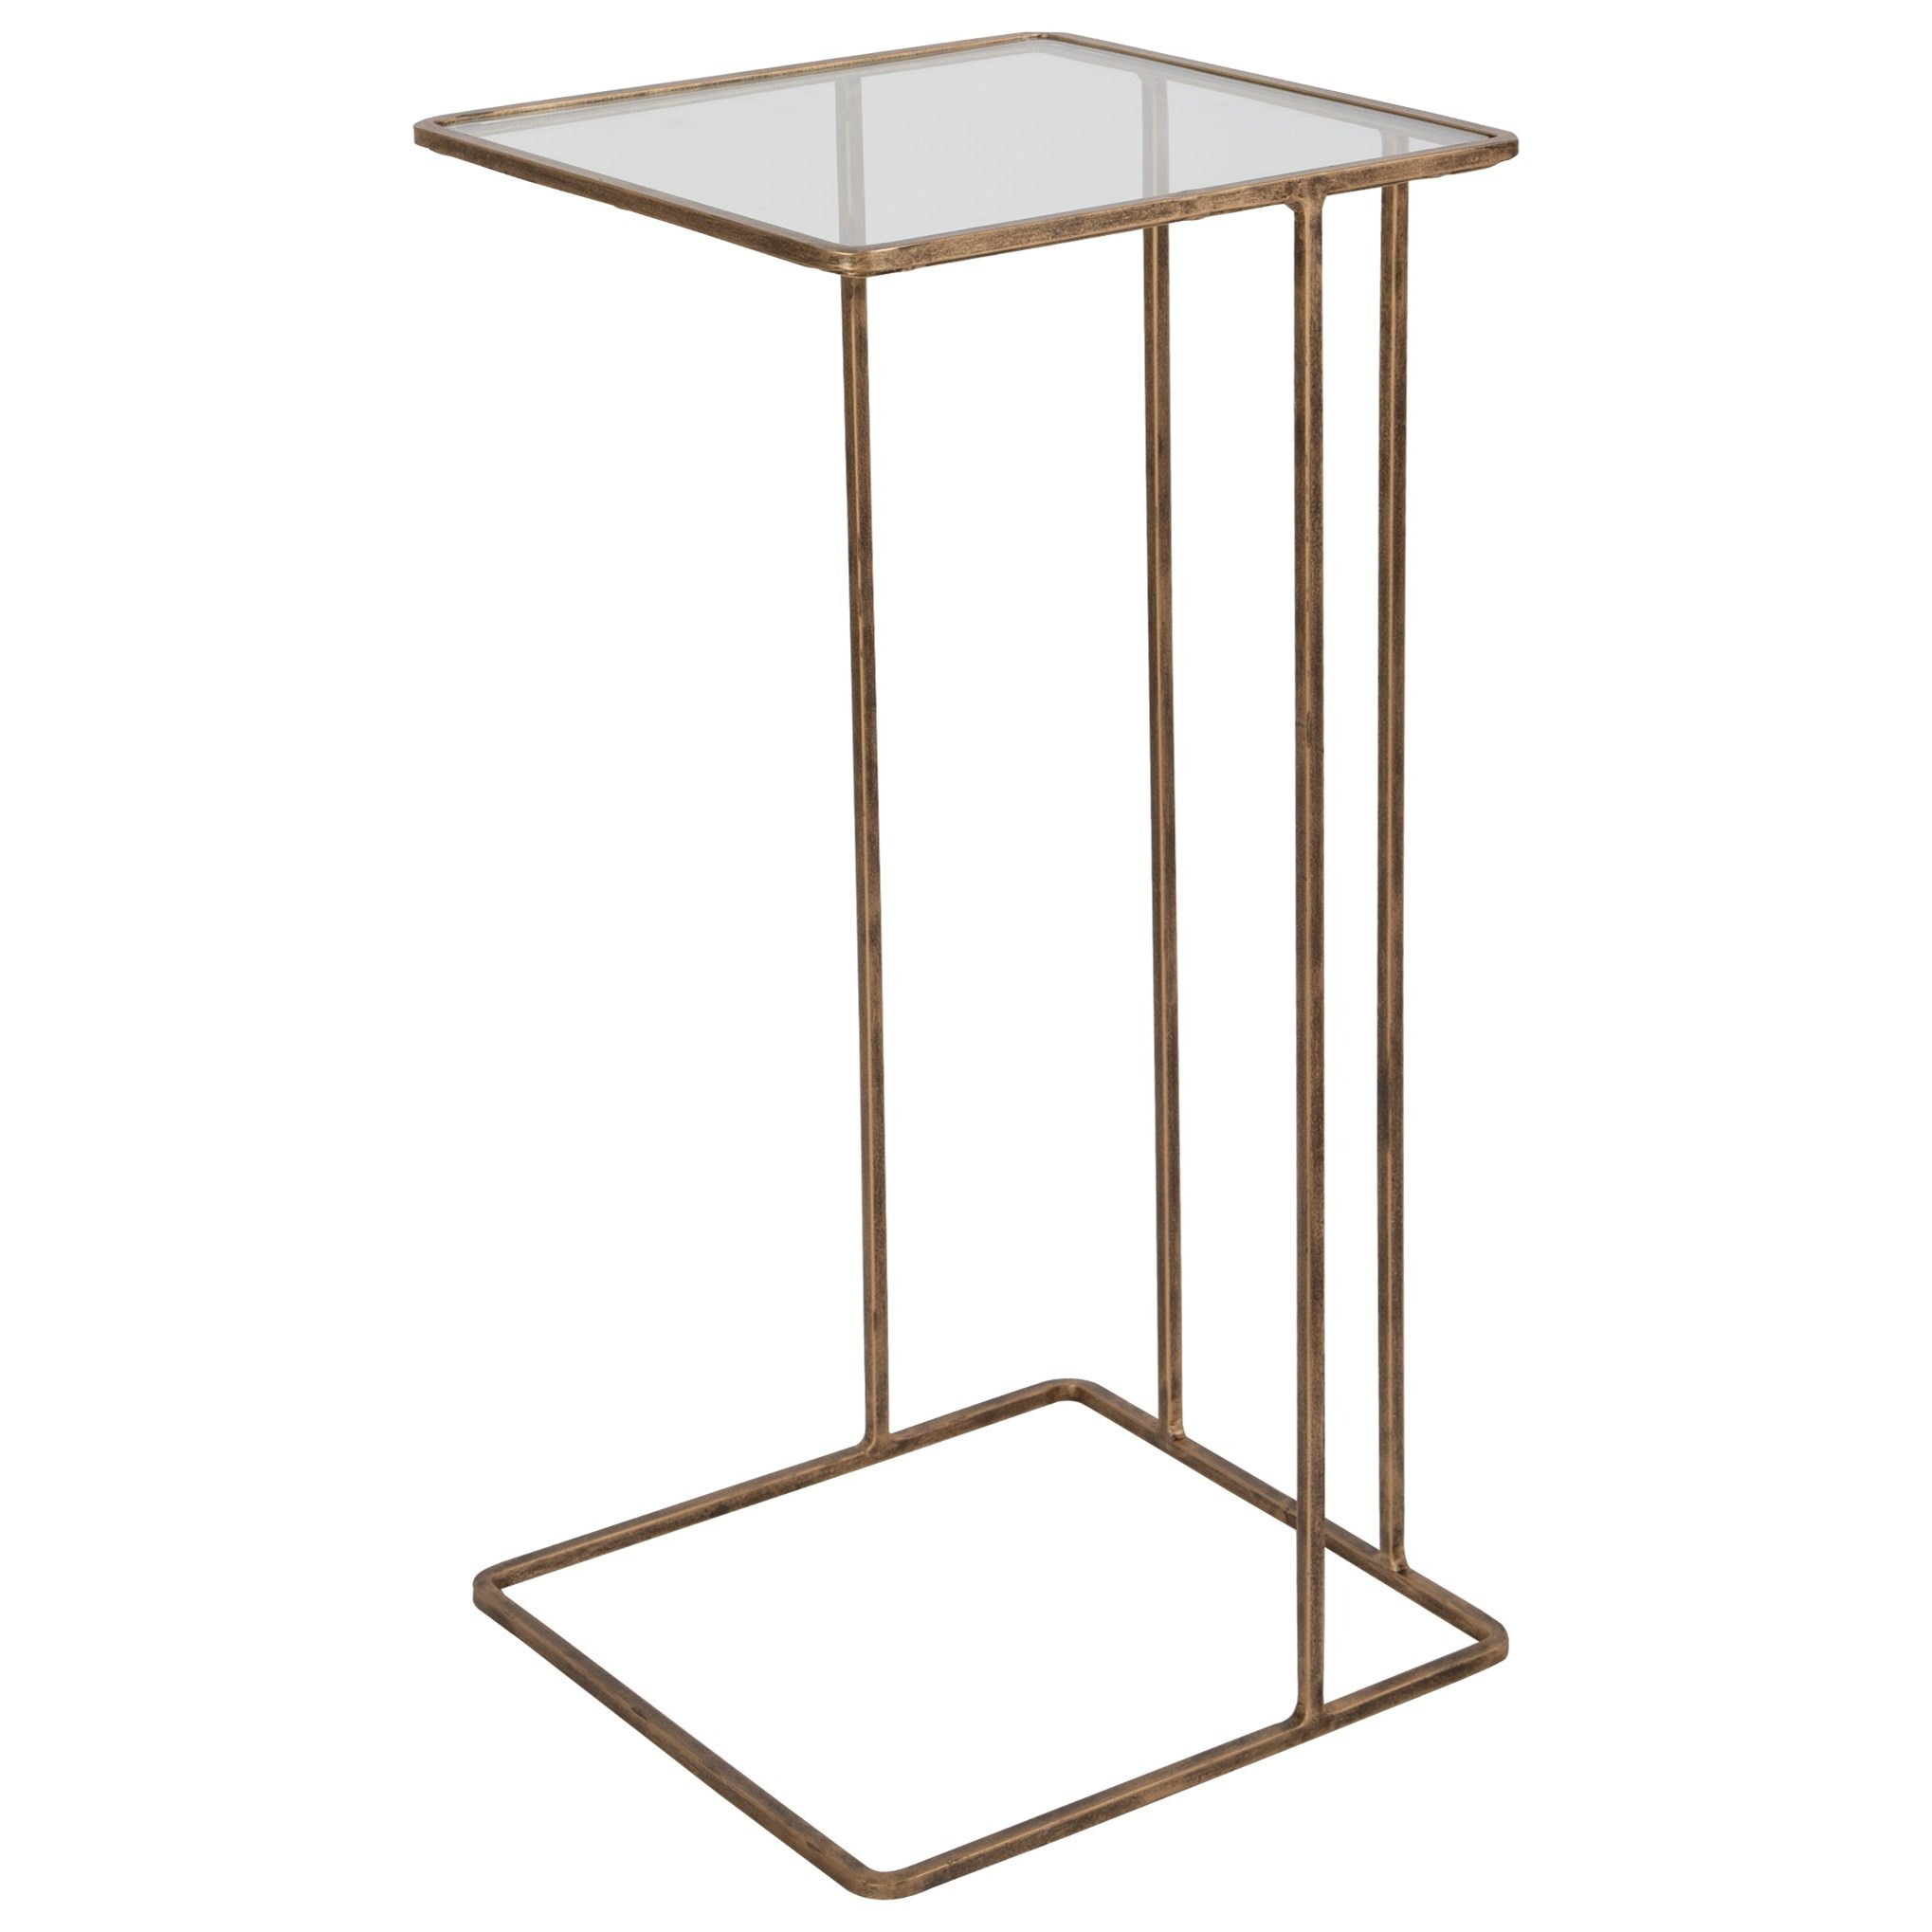 Accent Furniture - Occasional Tables Cadmus Gold Side Table by Uttermost at Upper Room Home Furnishings